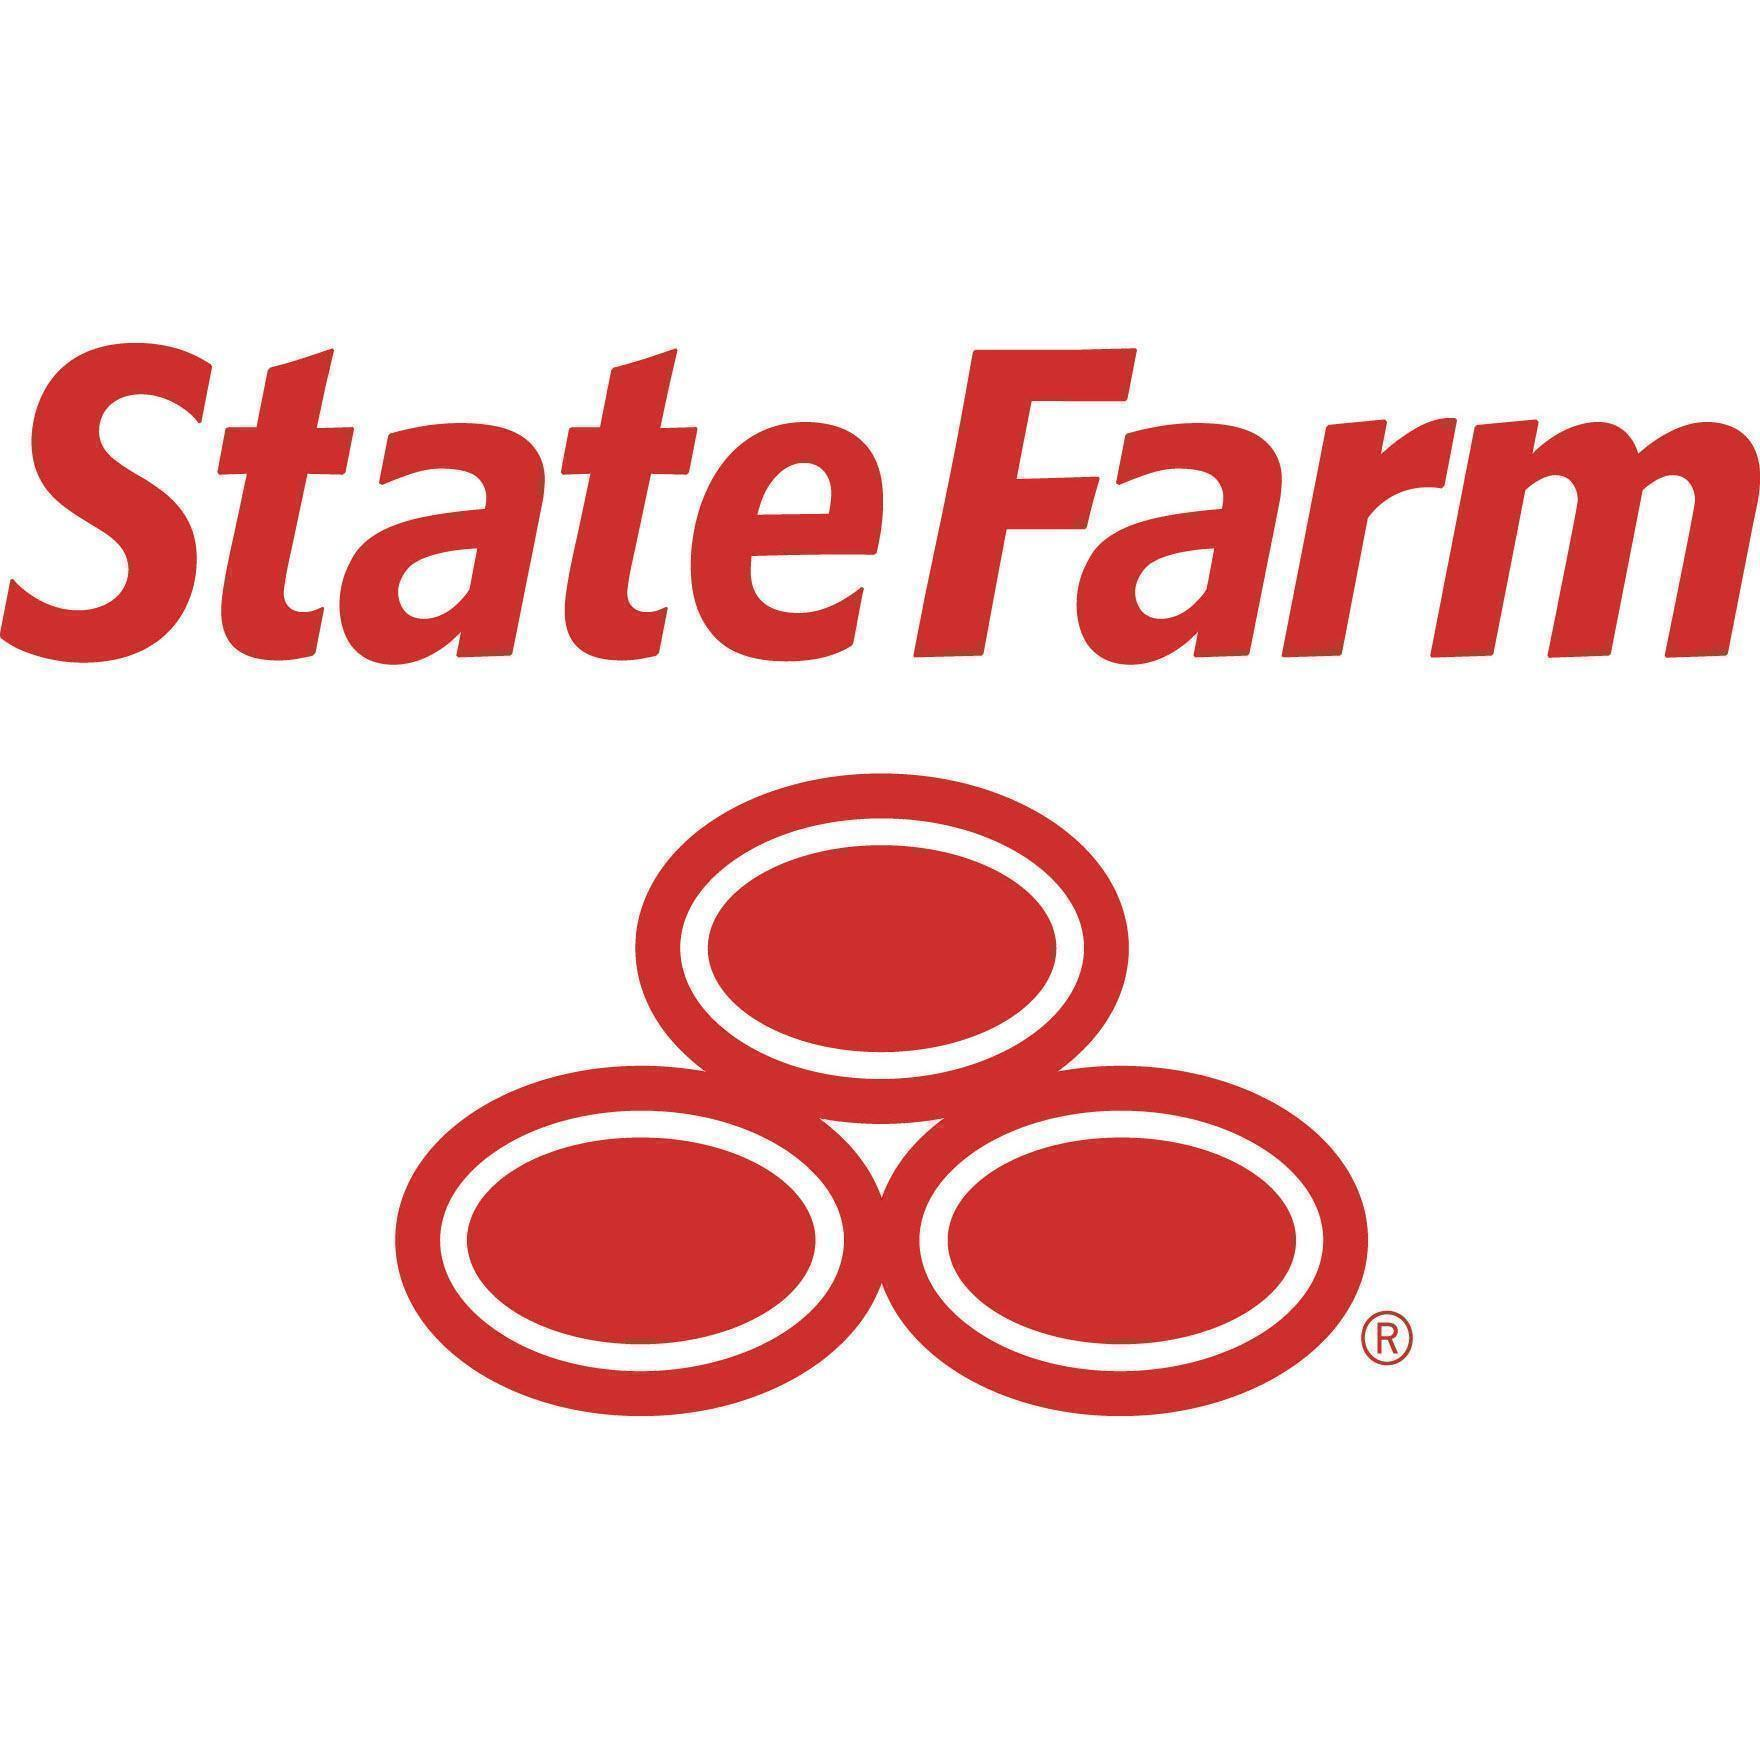 Jordan Tracey - State Farm Insurance Agent